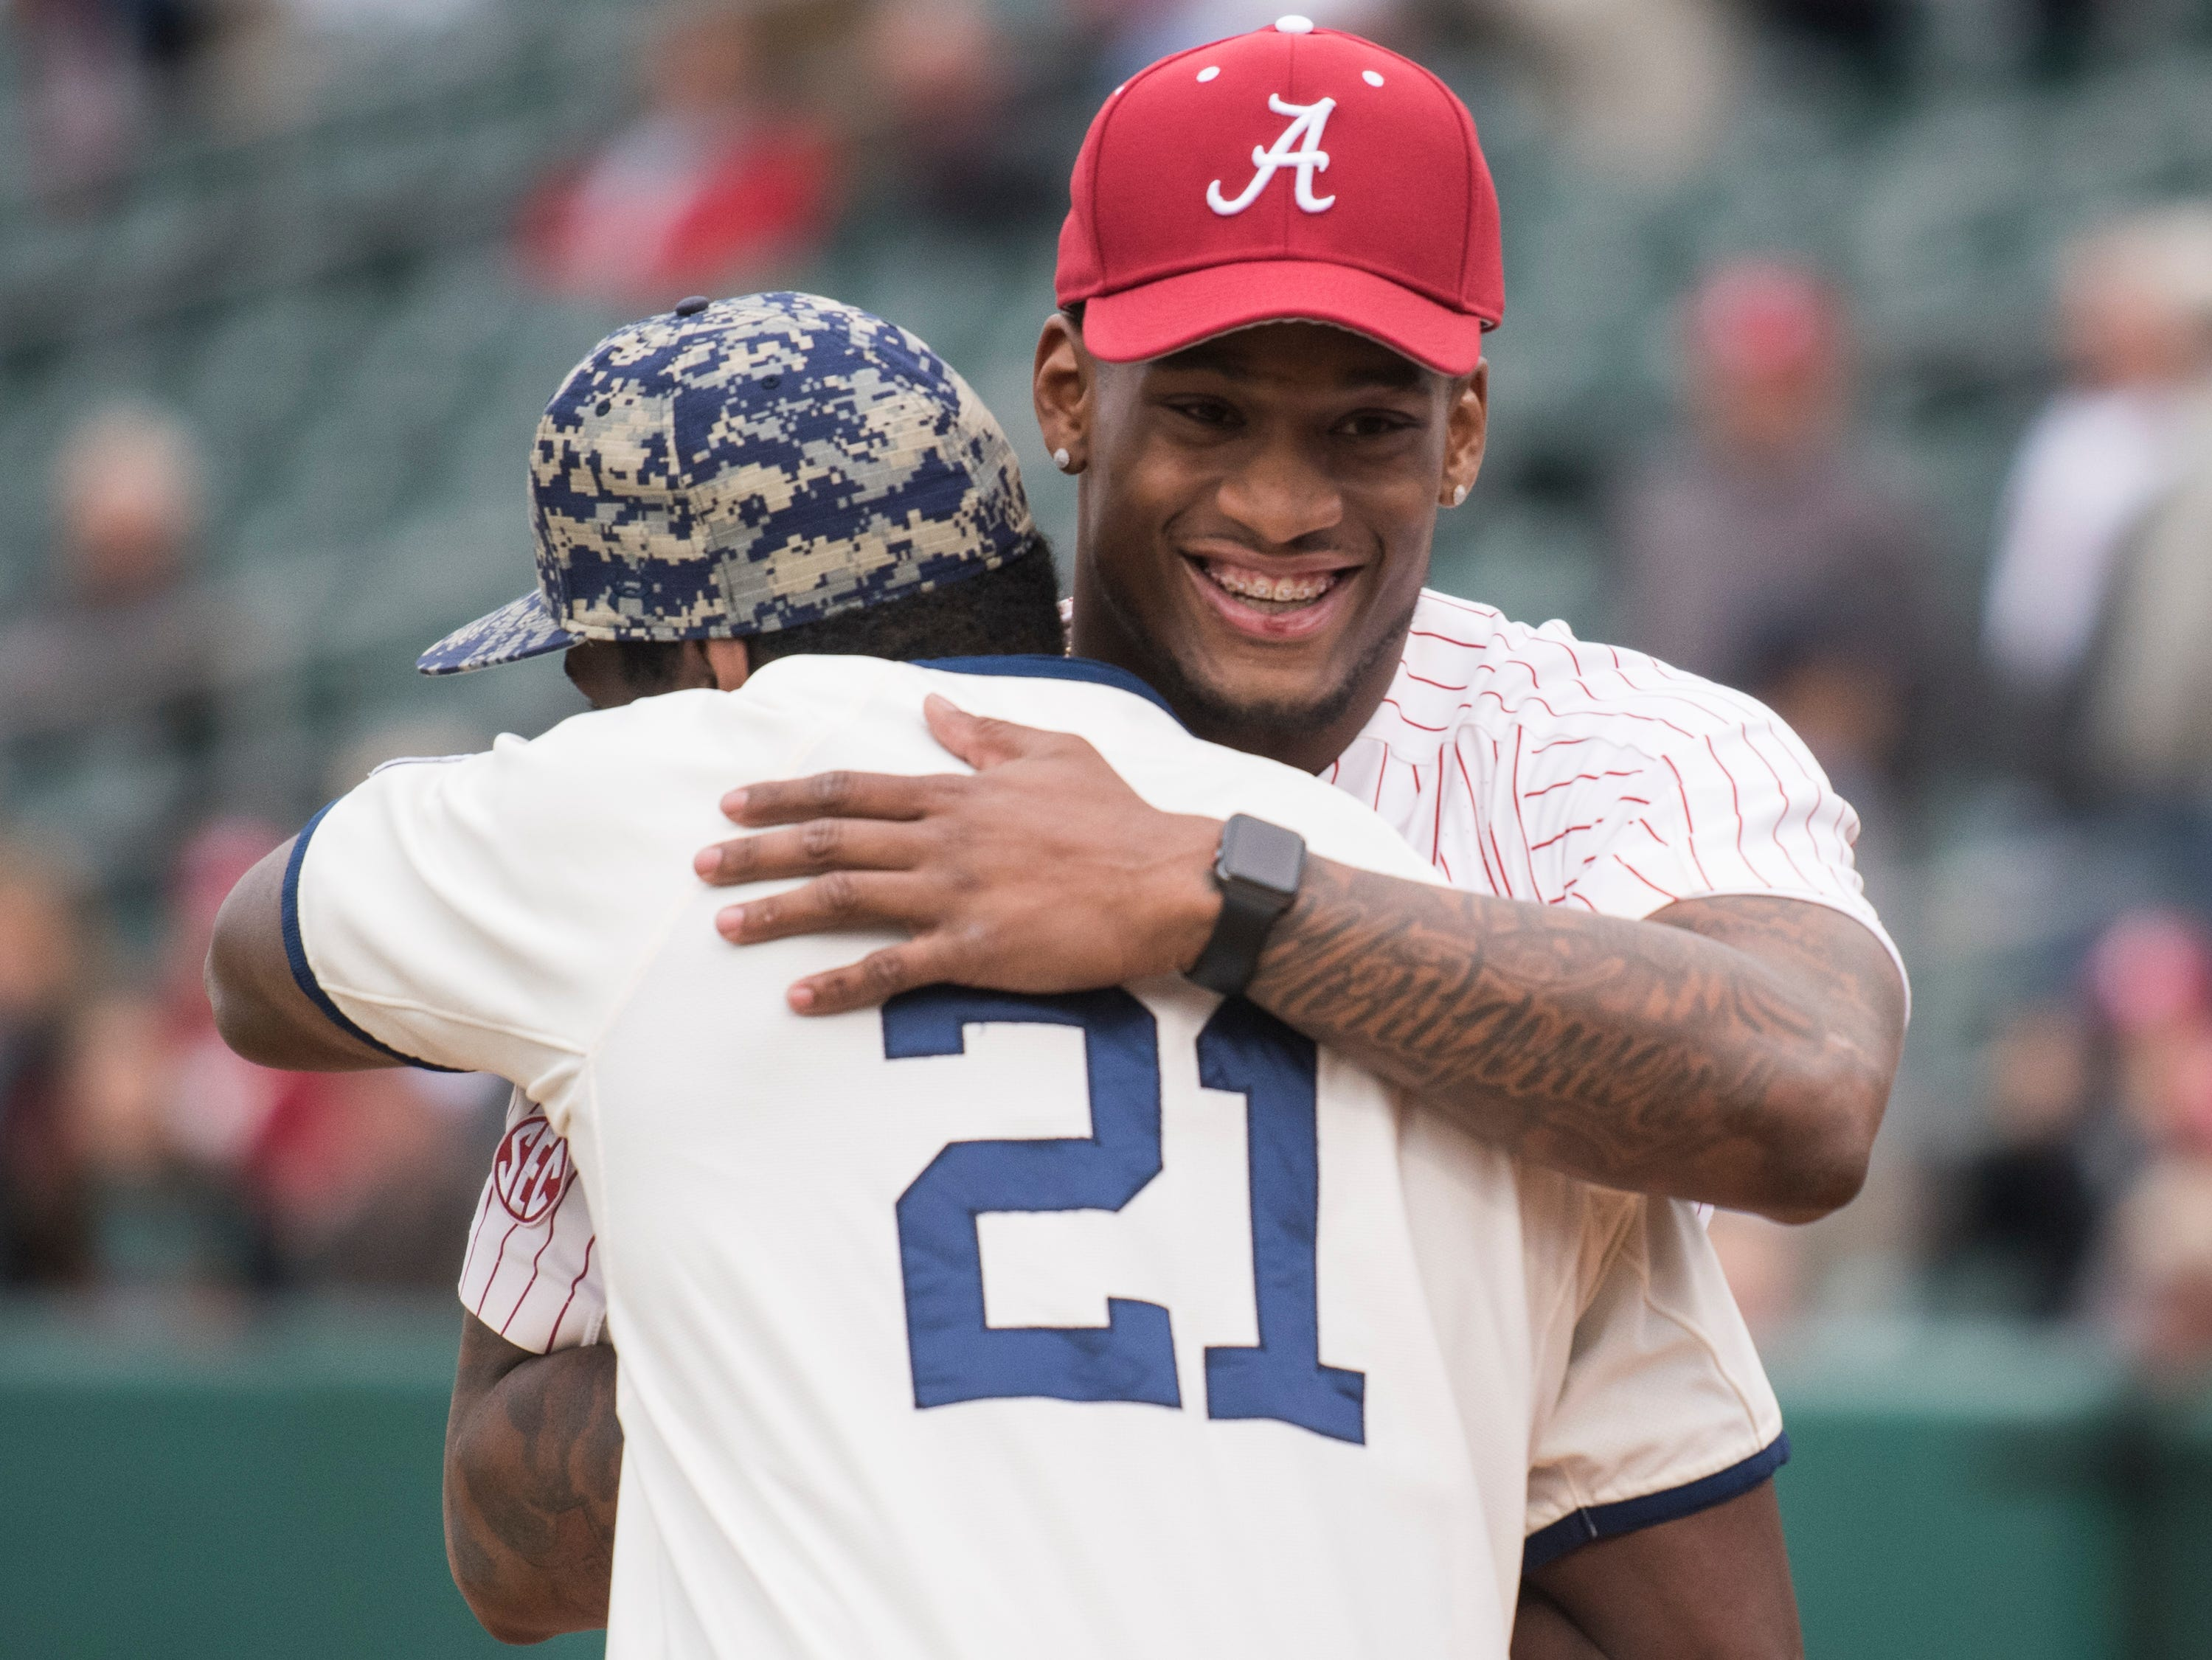 Former Auburn running back Kerryon Johnson and former Alabama linebacker Mack Wilson hug as they both throw out the first pitch during the Auburn-Alabama Capital City Classic at Riverwalk Stadium in Montgomery, Ala., on Tuesday, March 26, 2019.